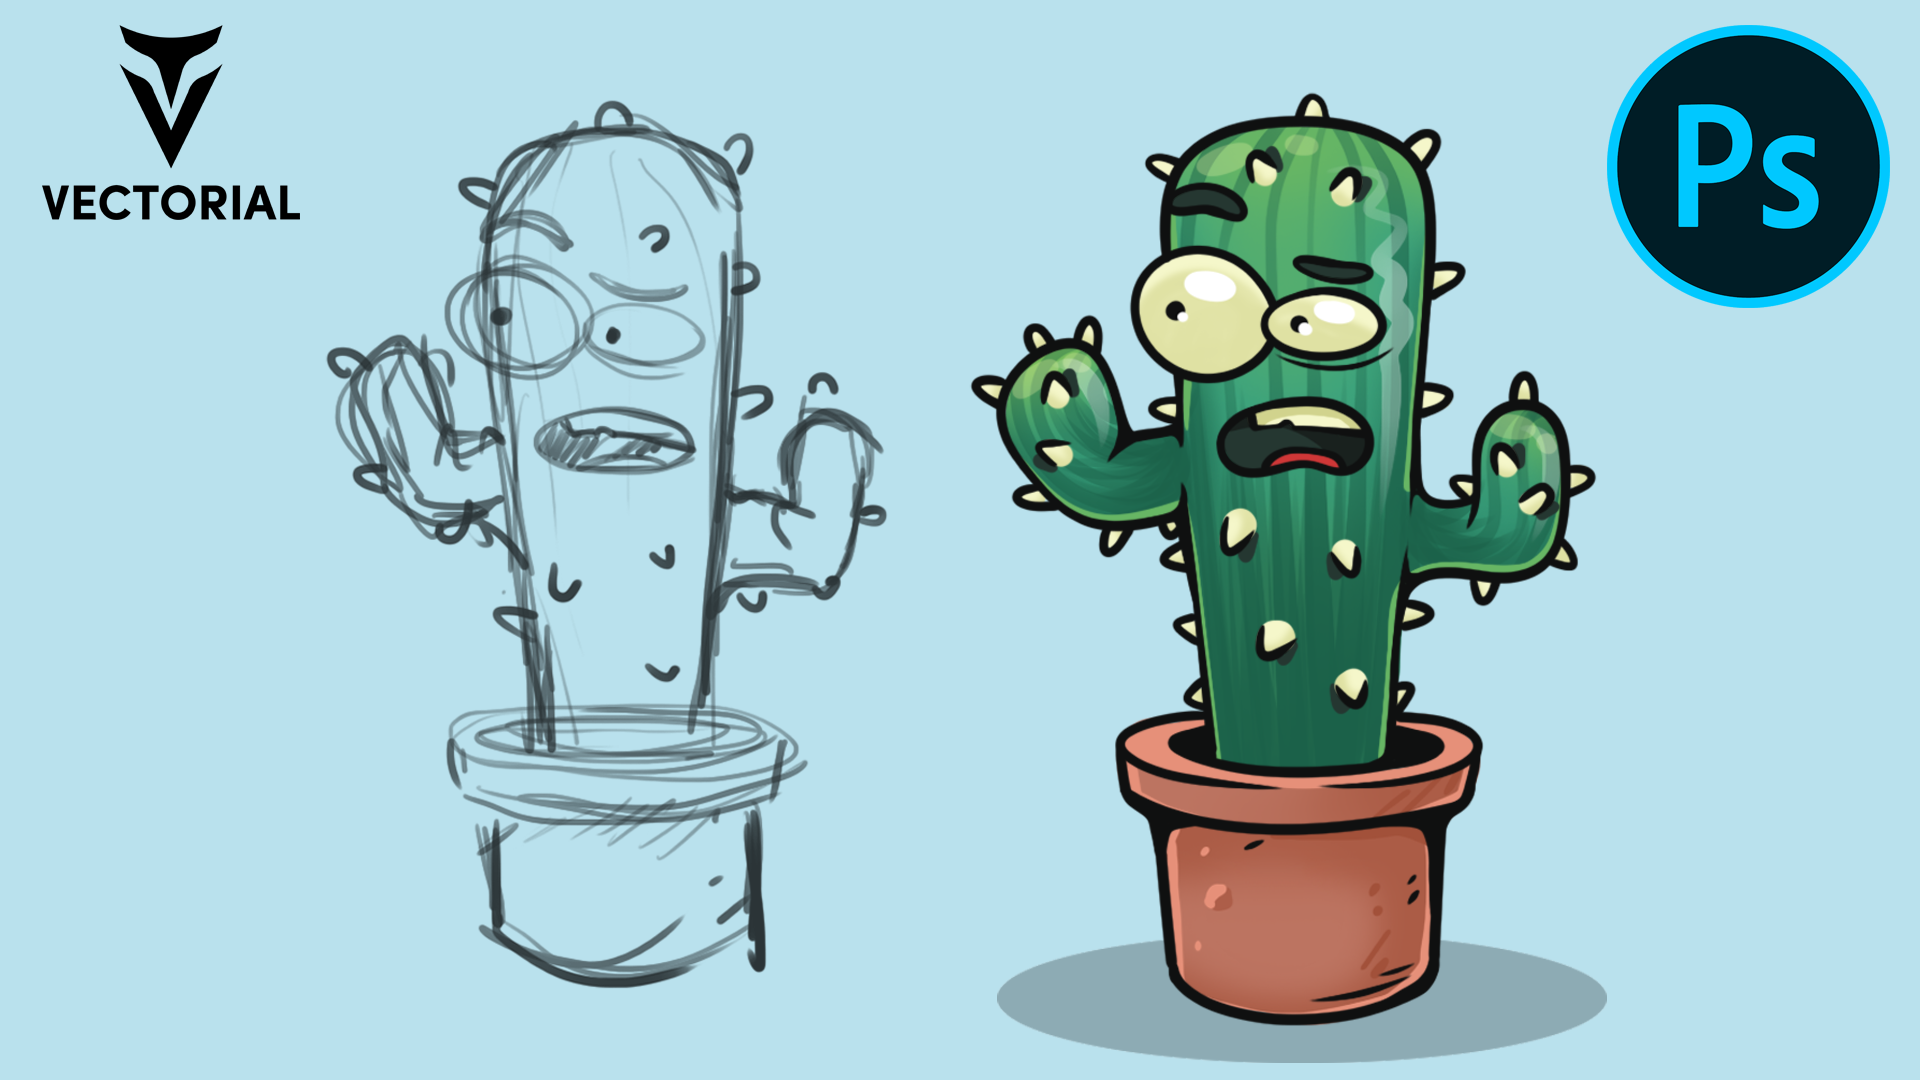 How to draw a Cactus Character in Adobe Photoshop with wacom tablet